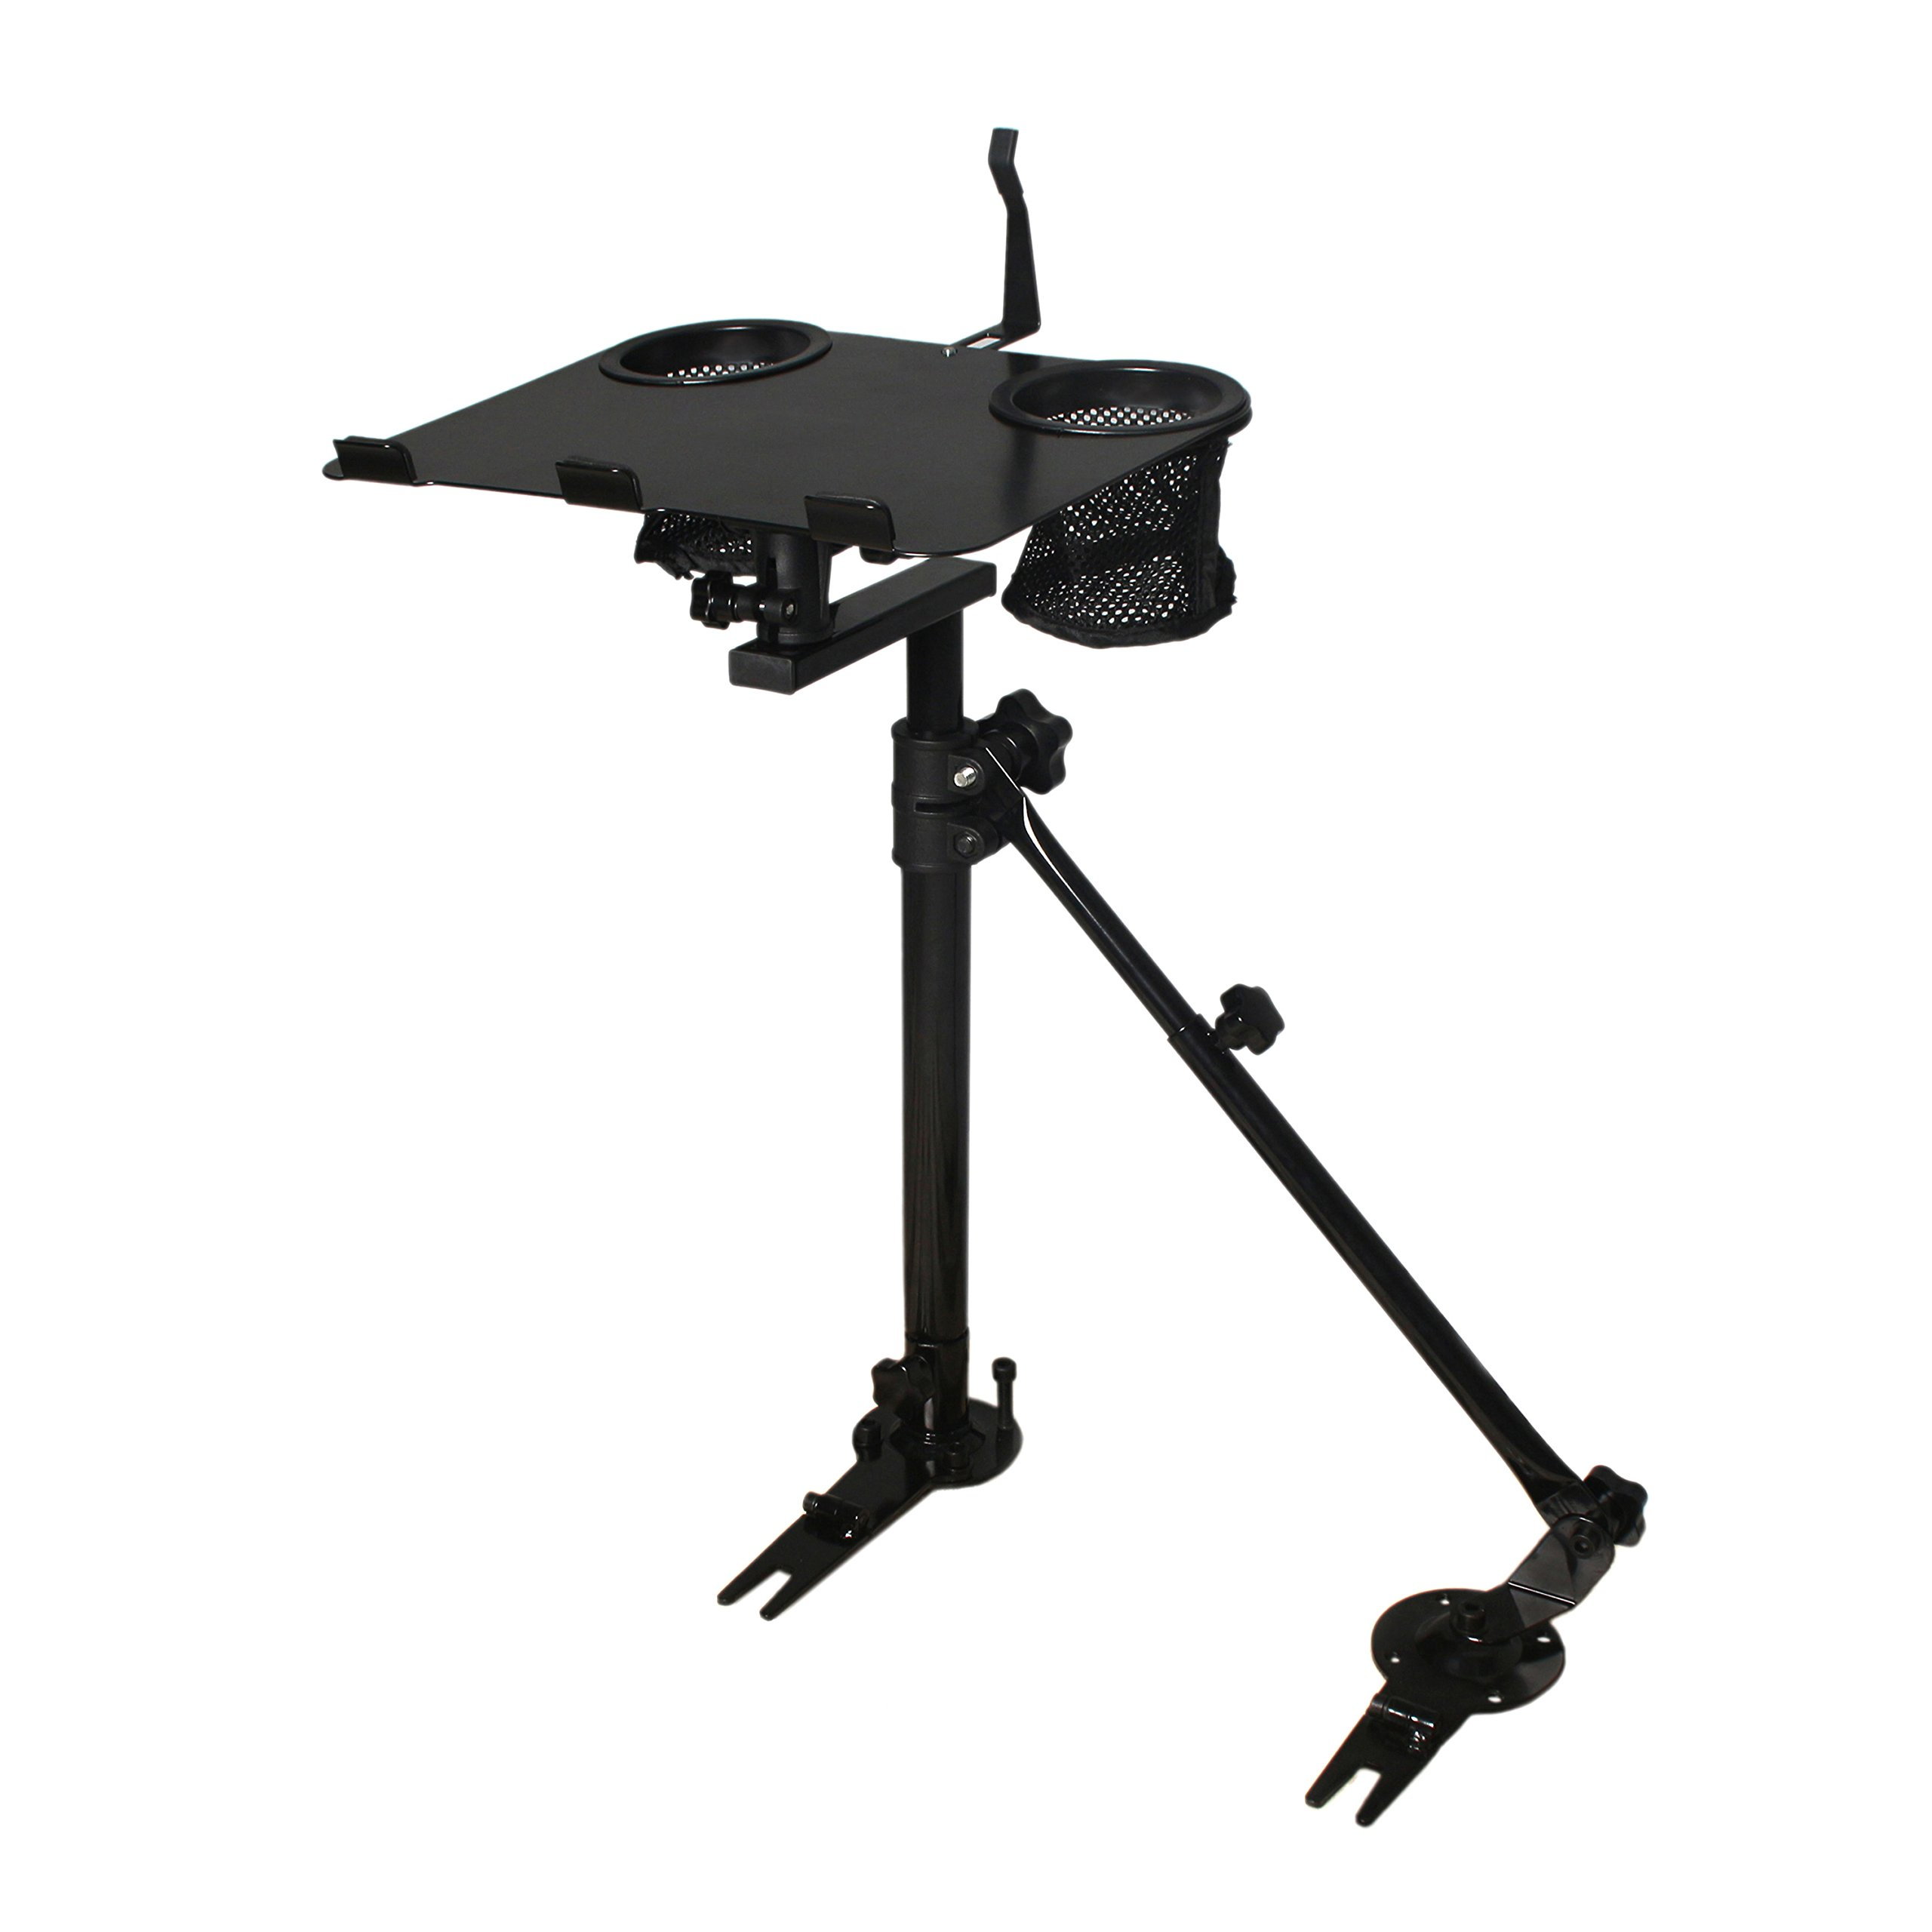 AA-Products K005-B3 Car Laptop Mount Stand Holder With Non-Drilling Bracket and Supporting Arm Kit